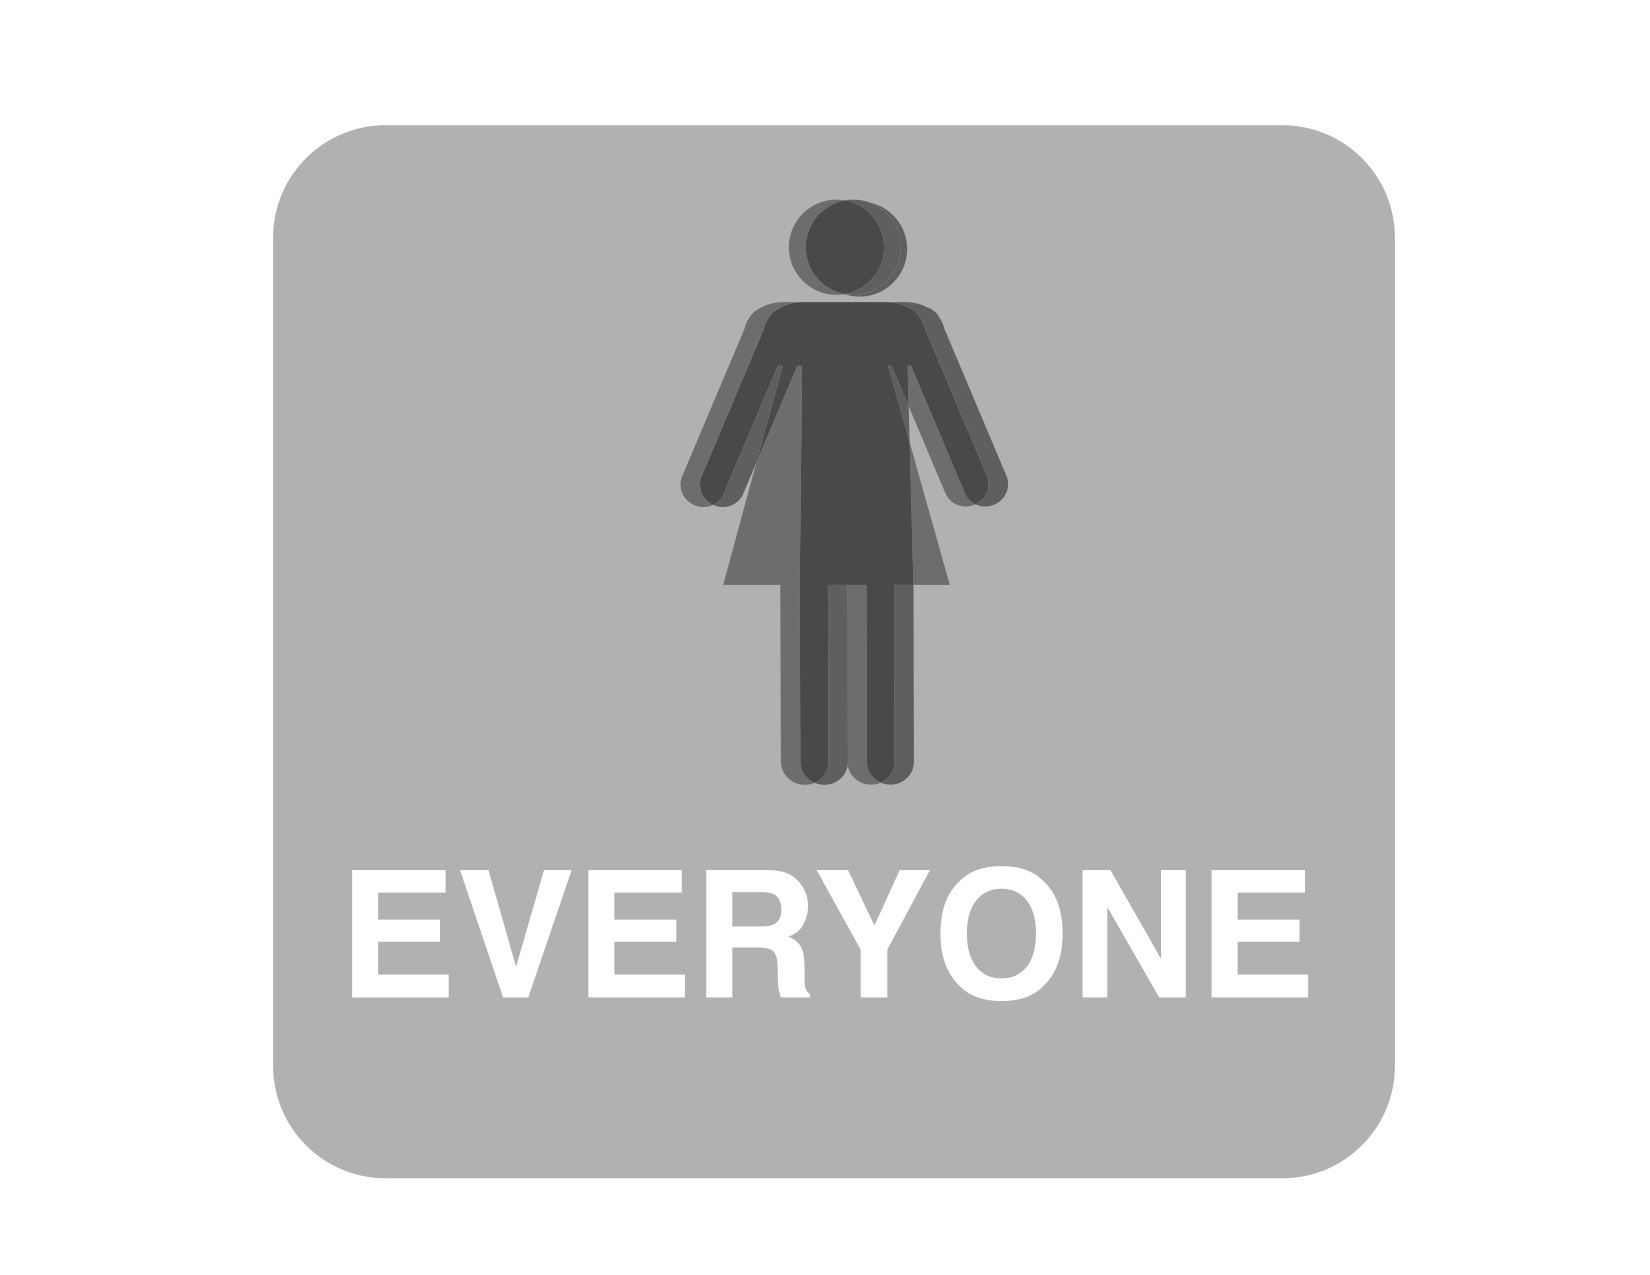 Gender neutral bathrooms cause unnecessary panic